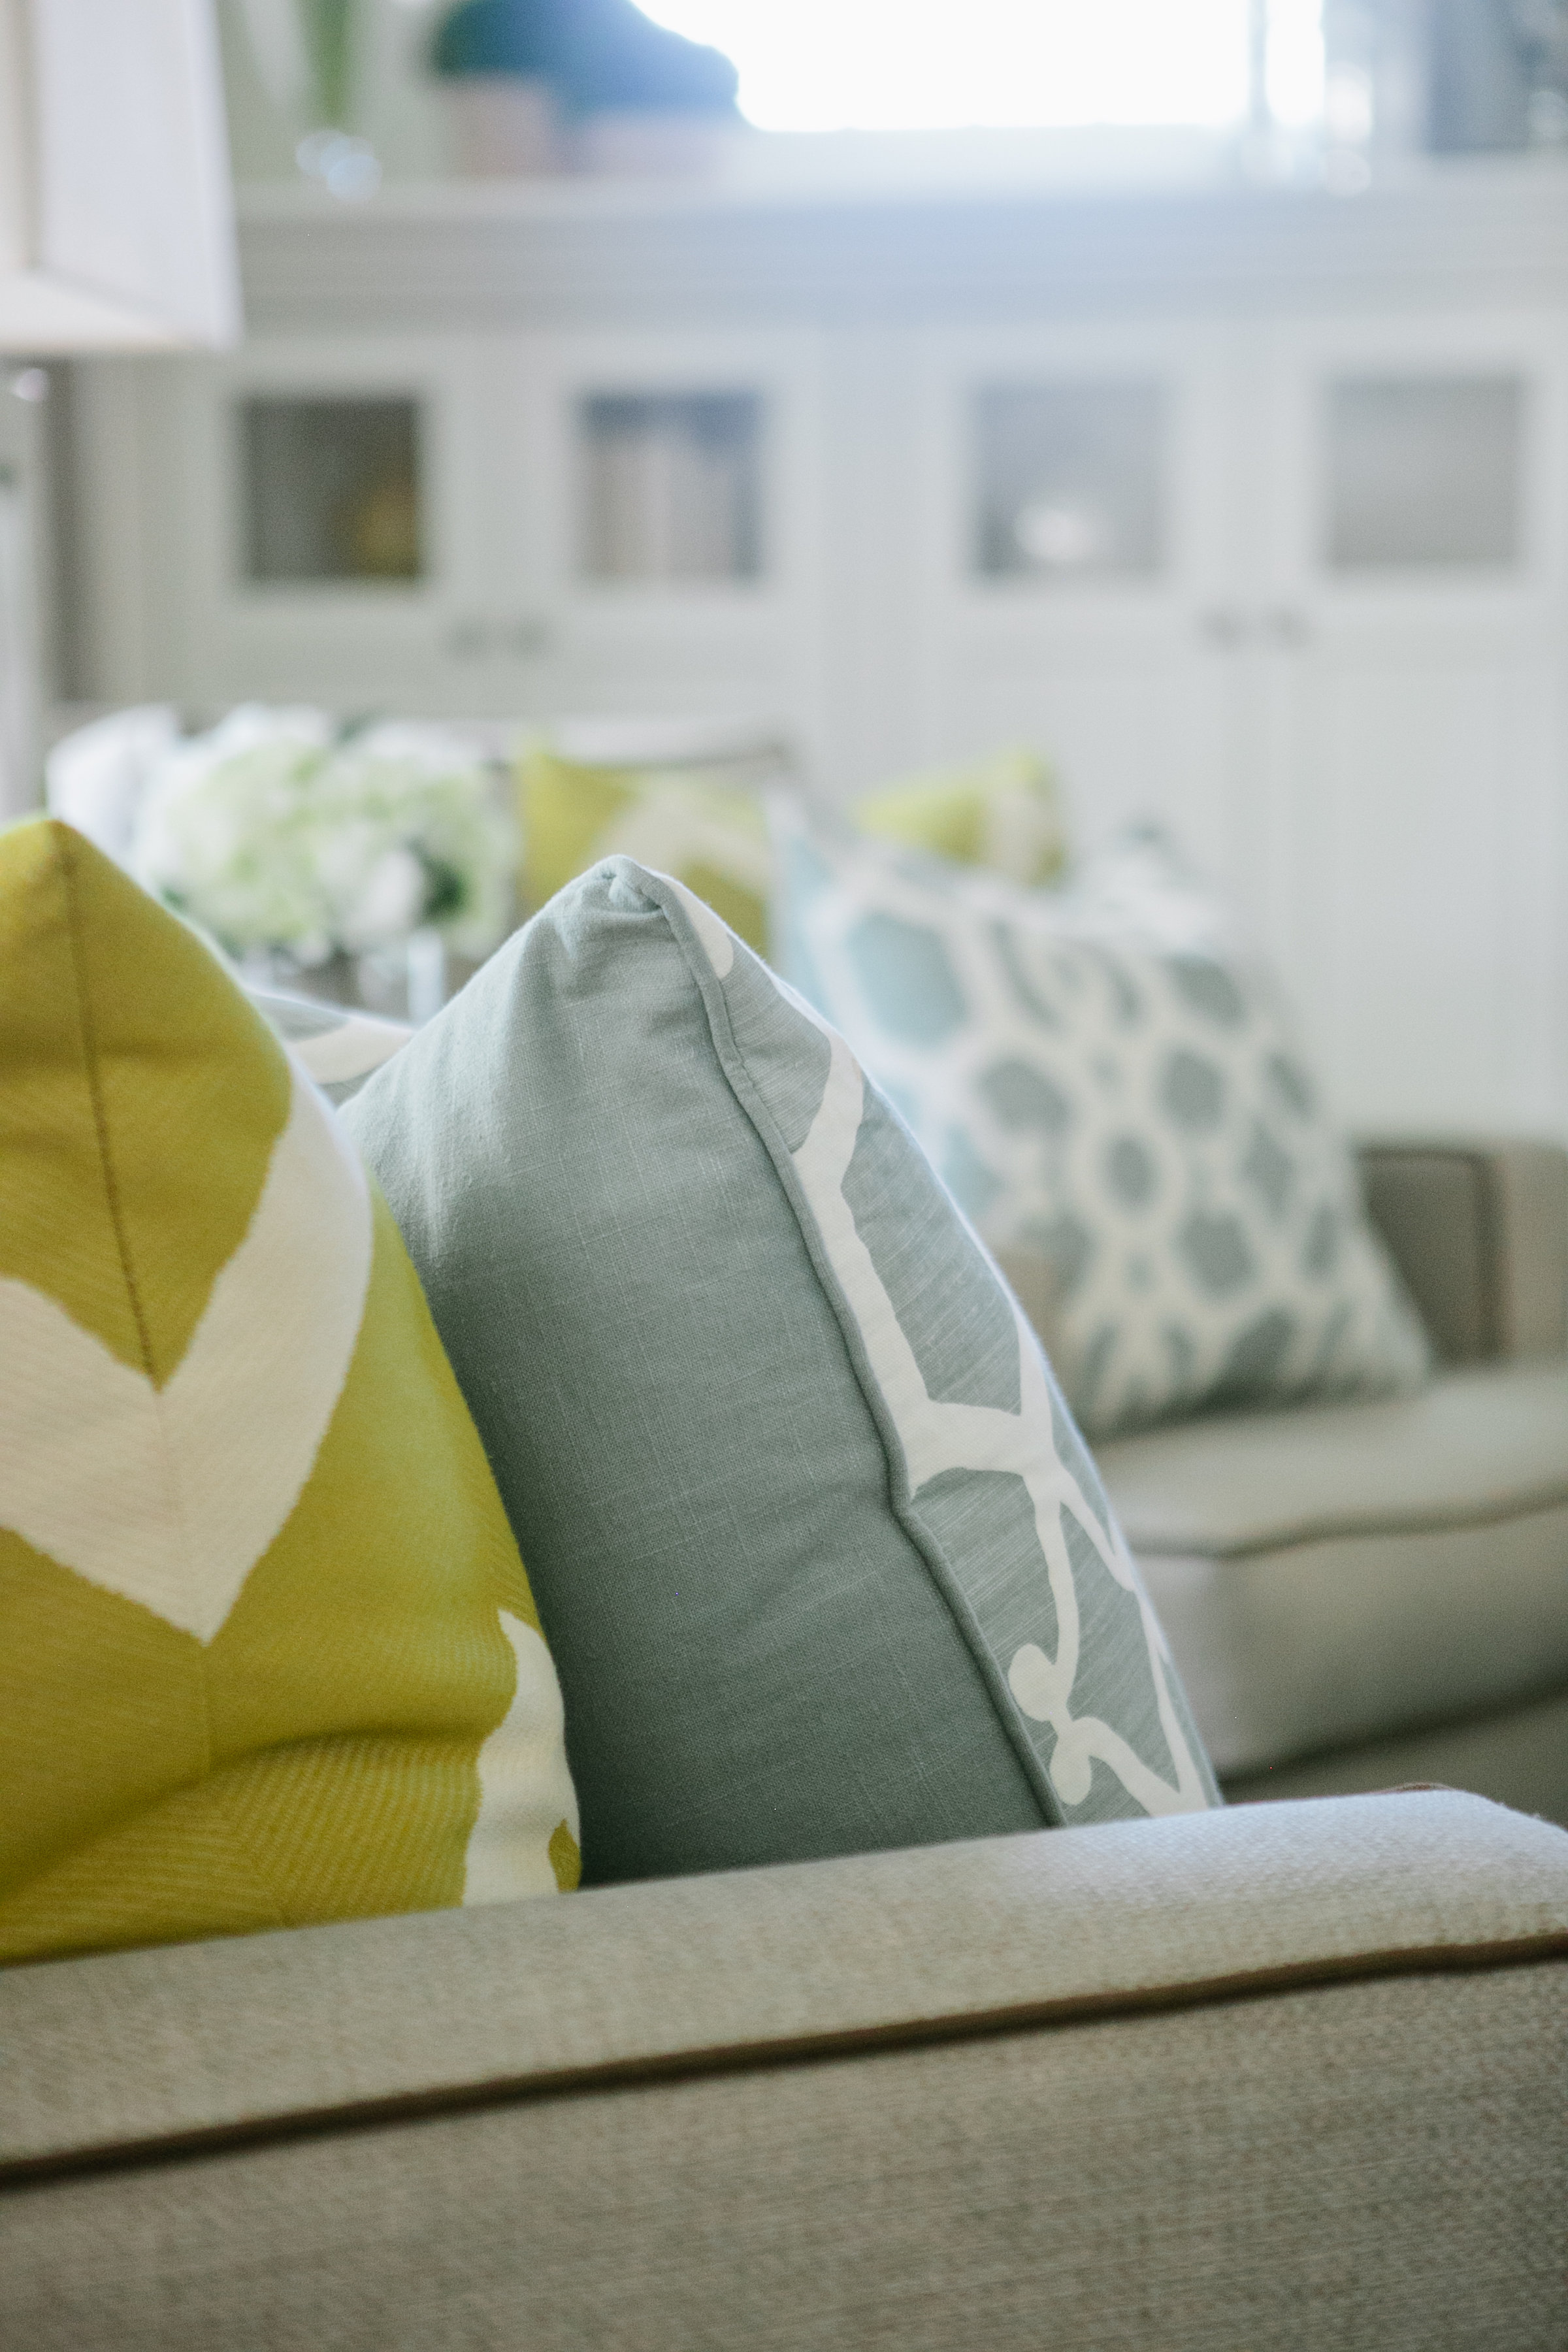 Pillows are another totally useful accessory that can brighten any space. We love coming up with various color combinations.